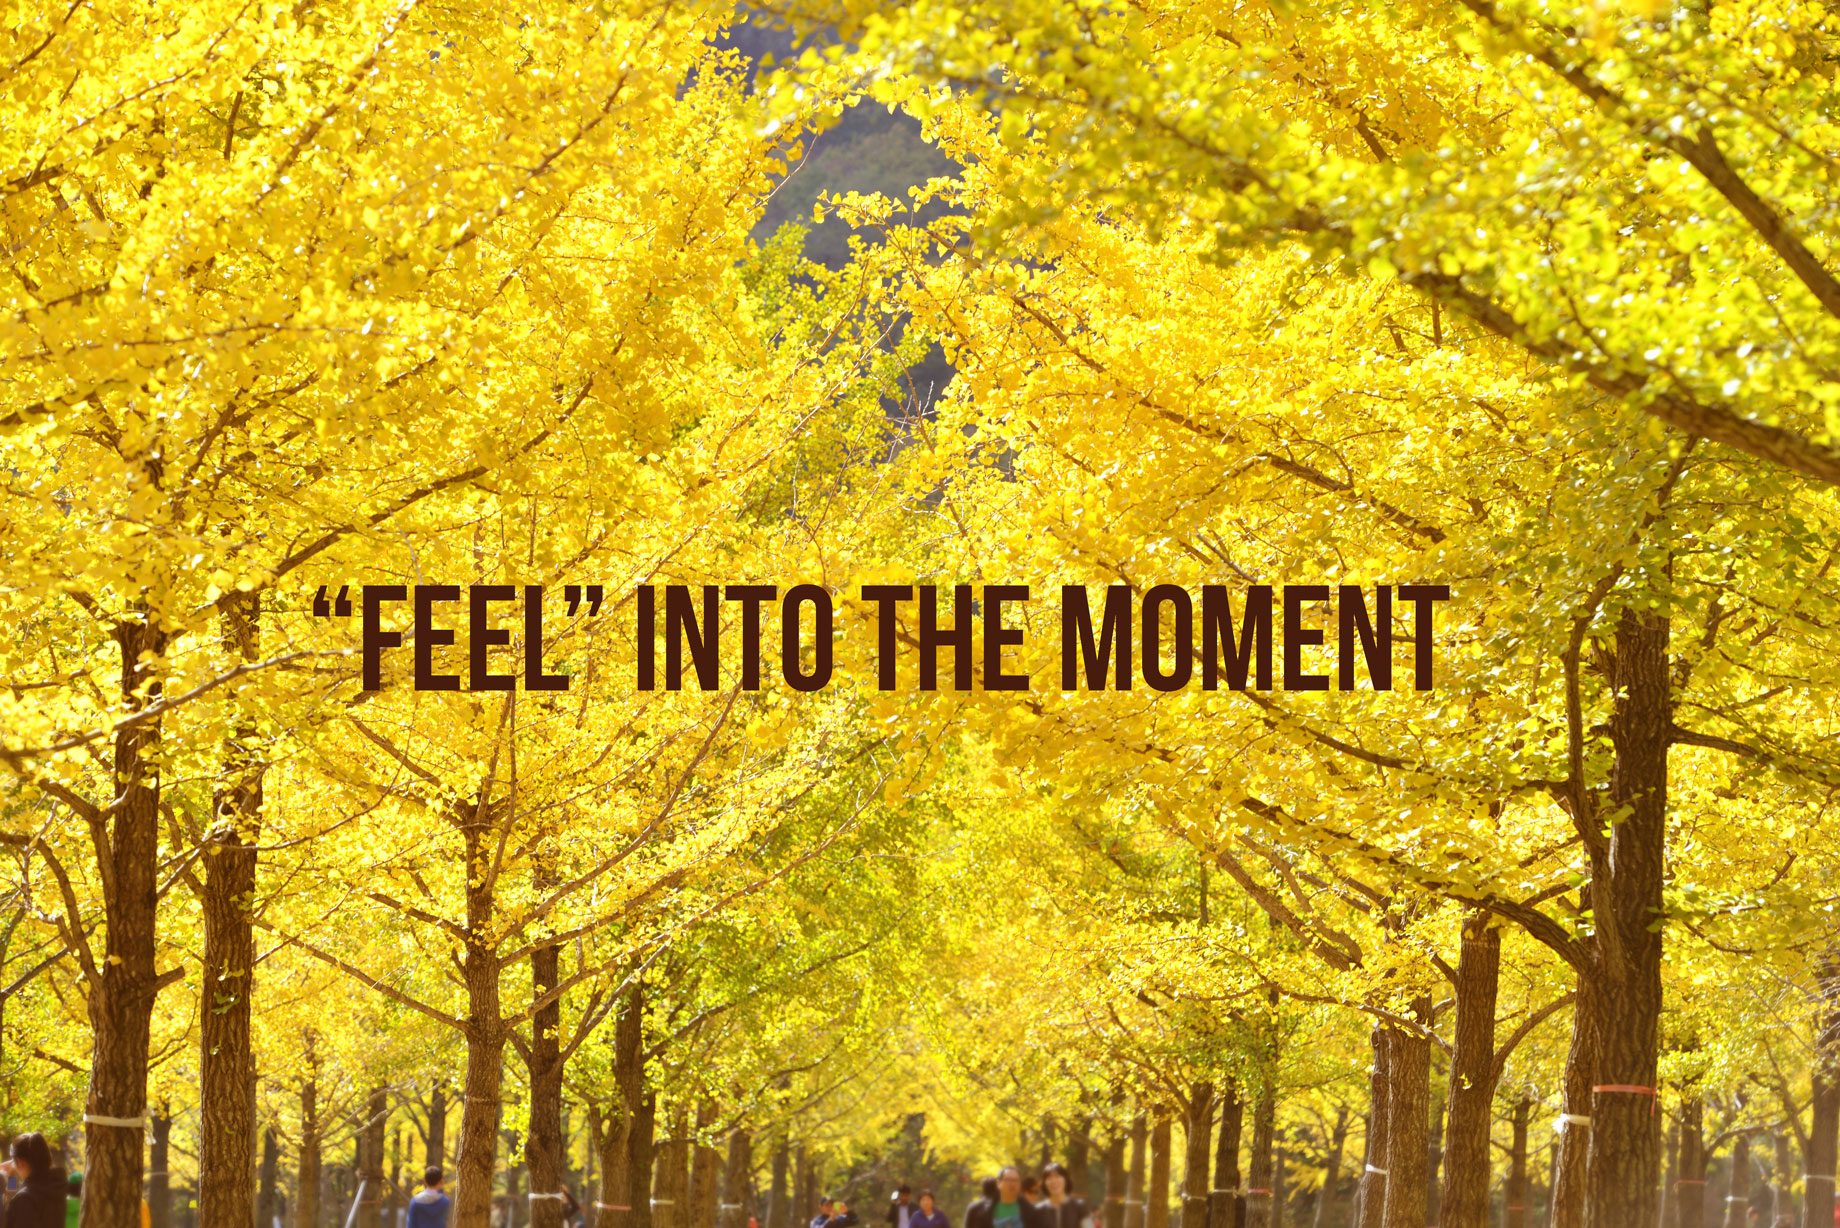 feel into moment